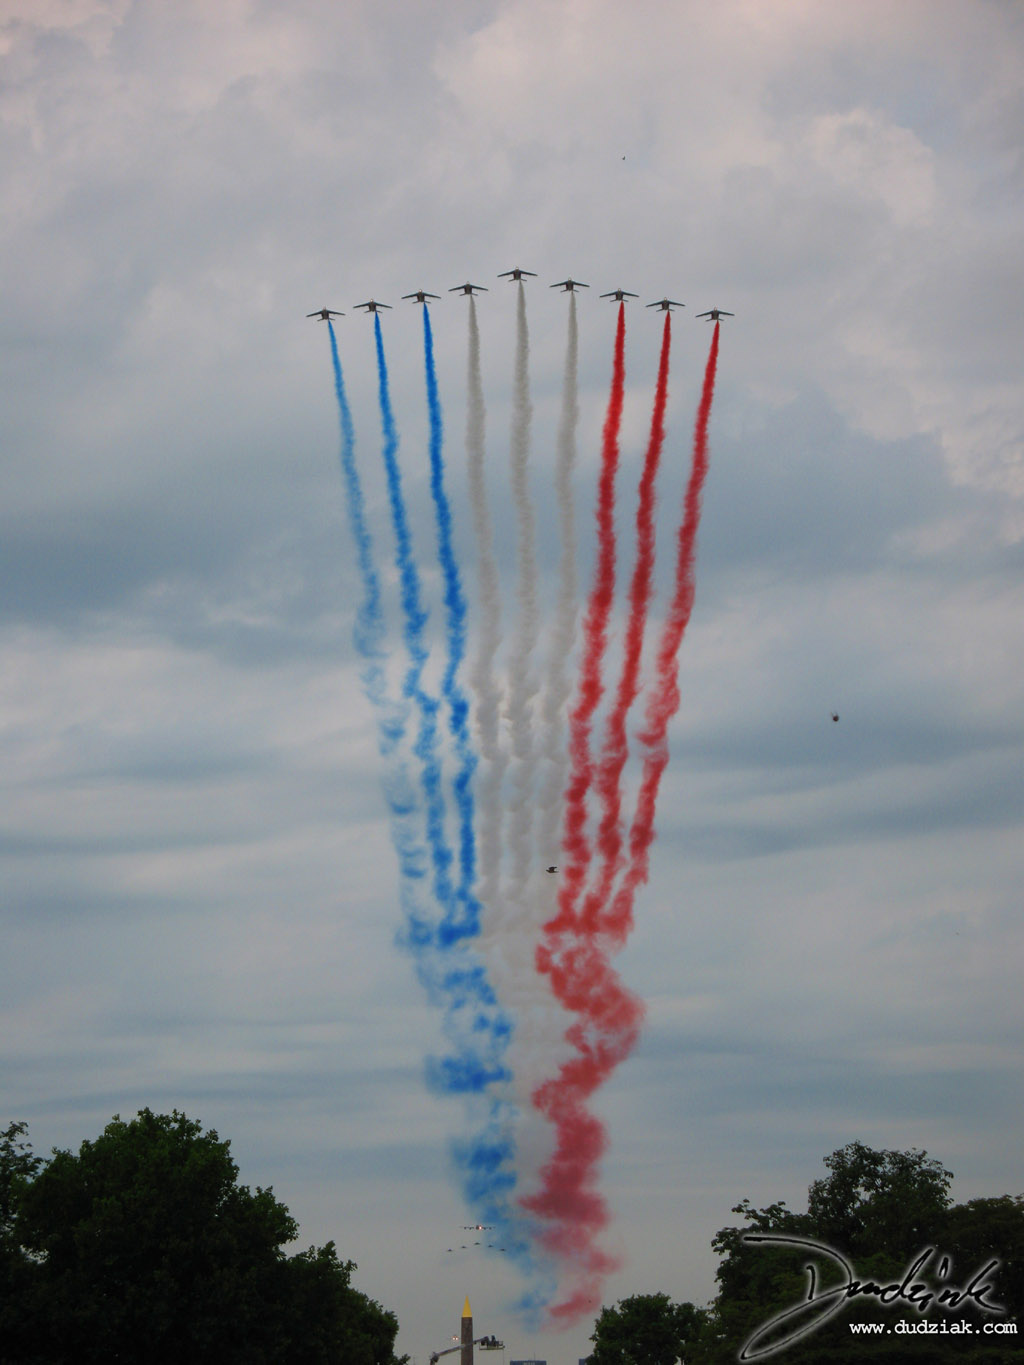 french air force,  Bastille Day,  France,  jets,  French Flag,  Quatorze Juillet,  airplanes,  Paris